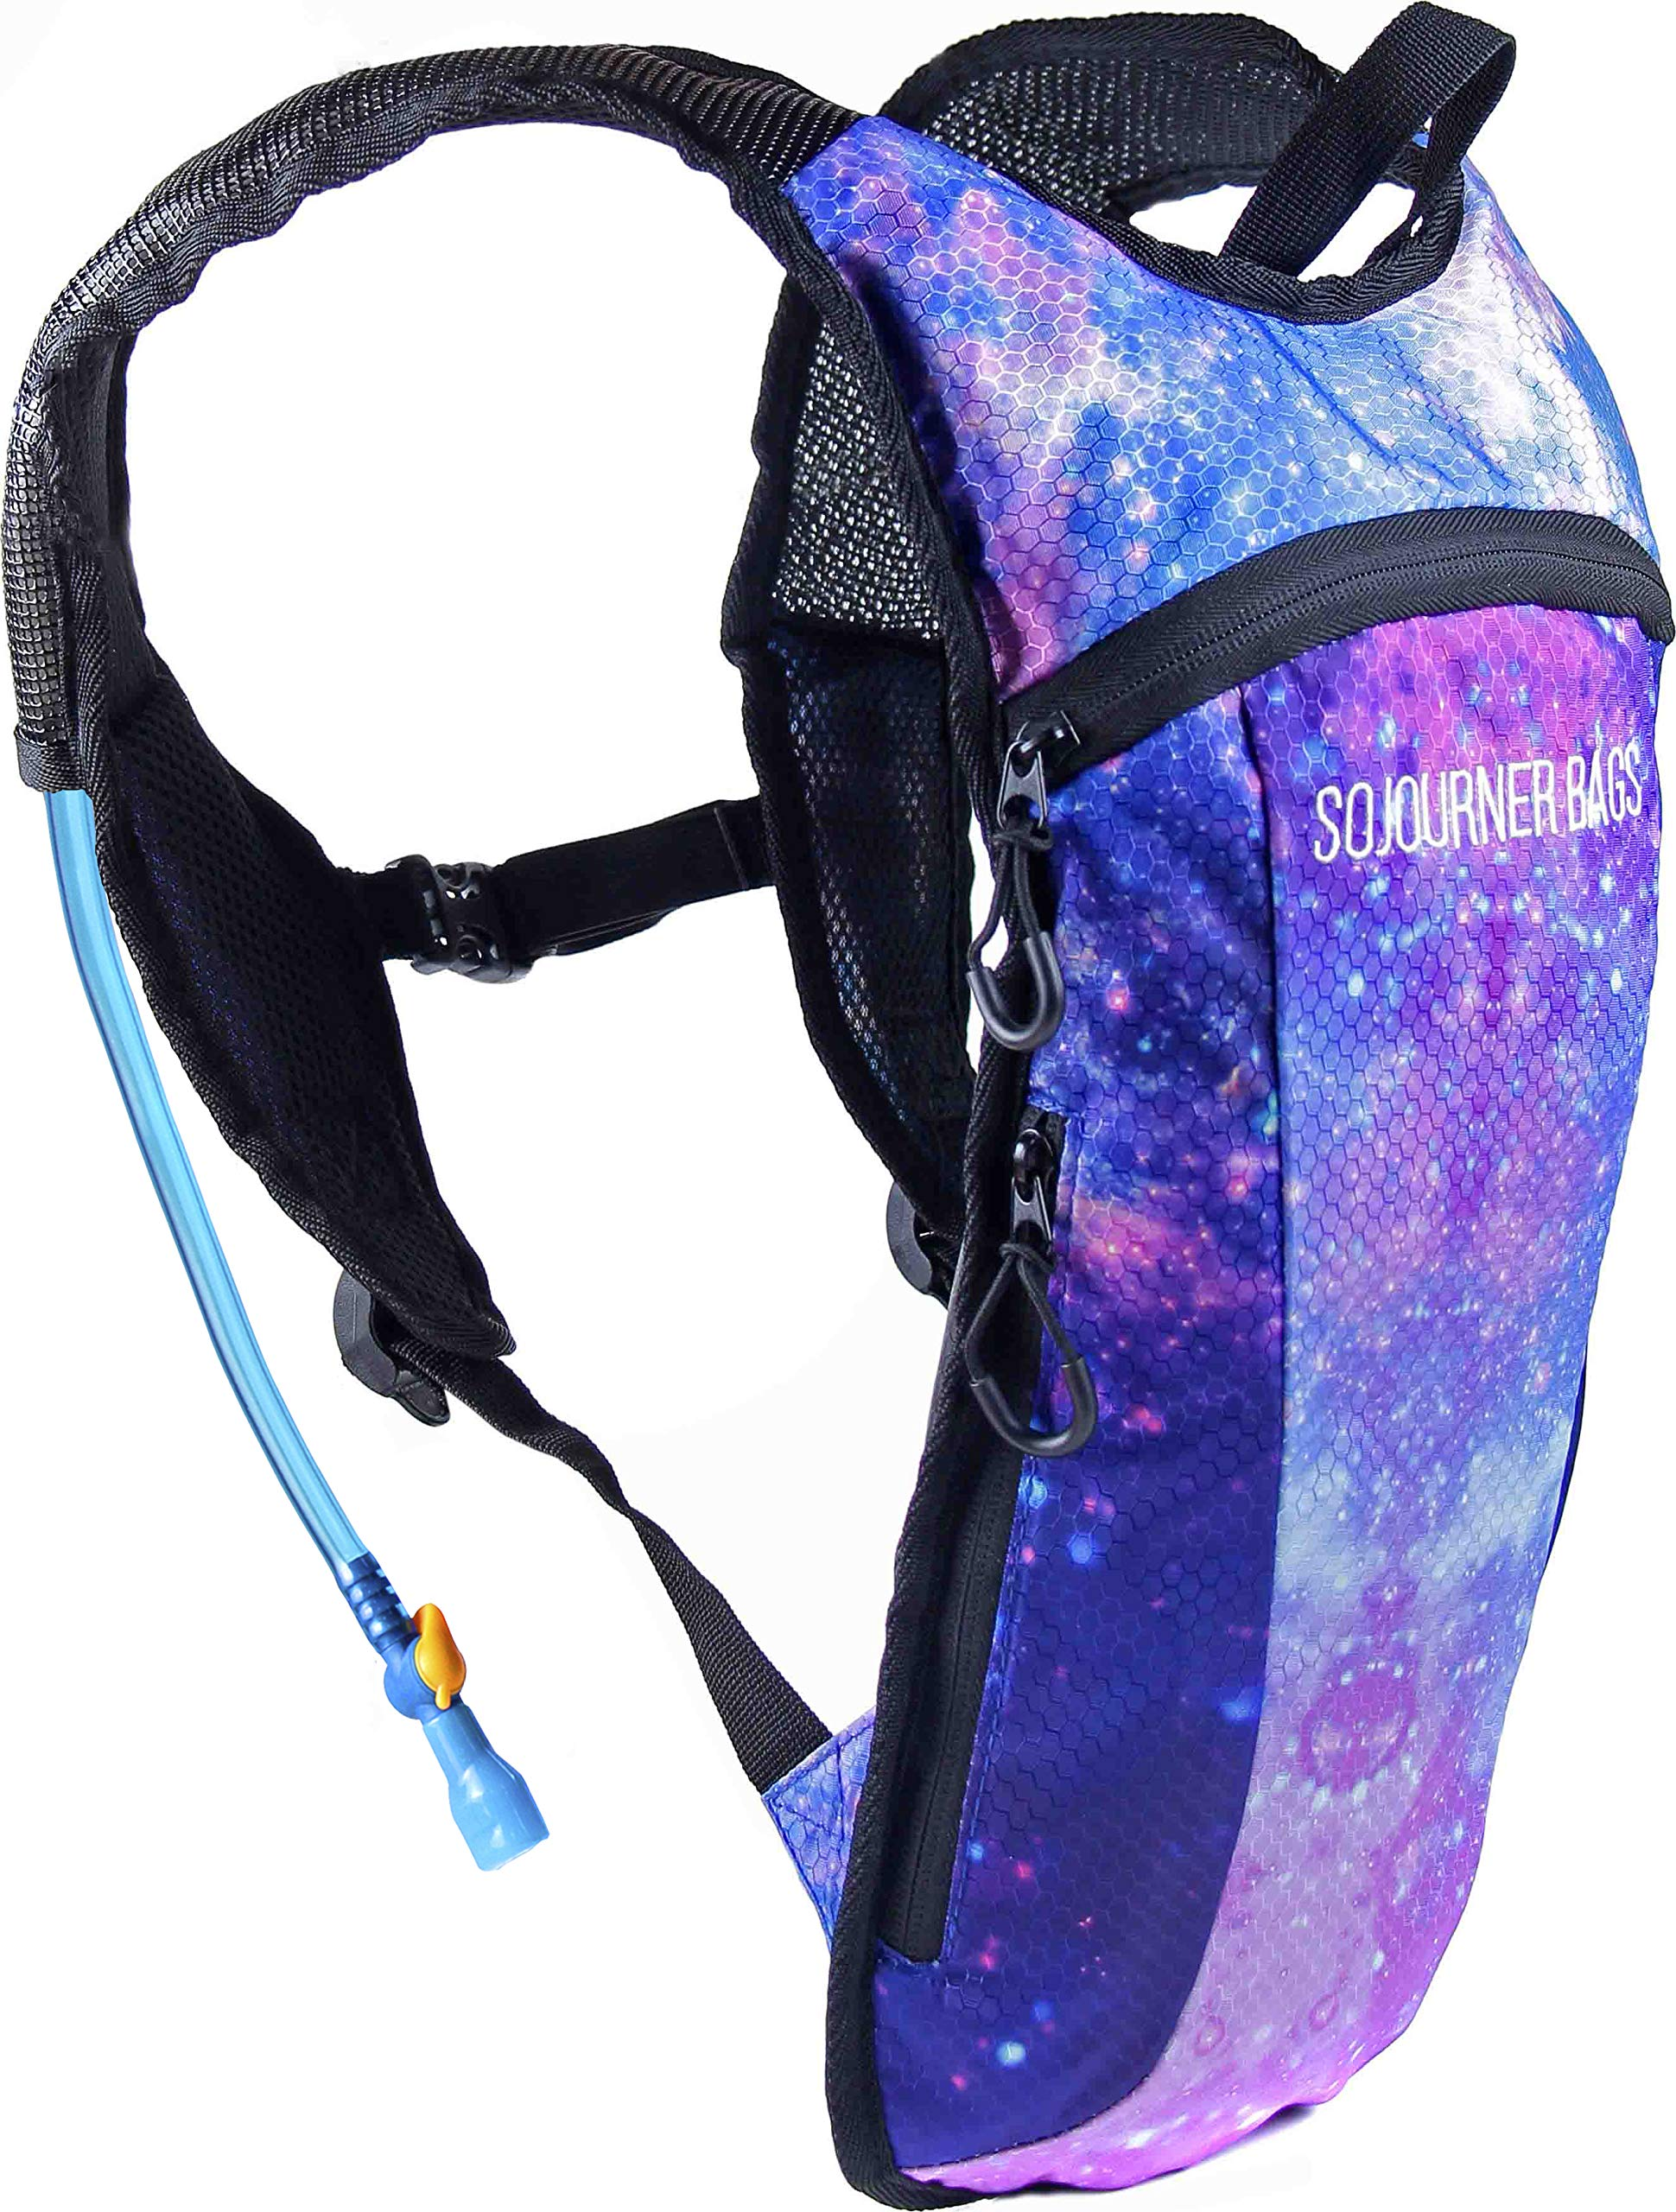 Sojourner Hydration Pack Backpack - 2L Water Bladder Included for Festivals, Raves, Hiking, Biking, Climbing, Running and More (Galaxy 1) by SoJourner Bags